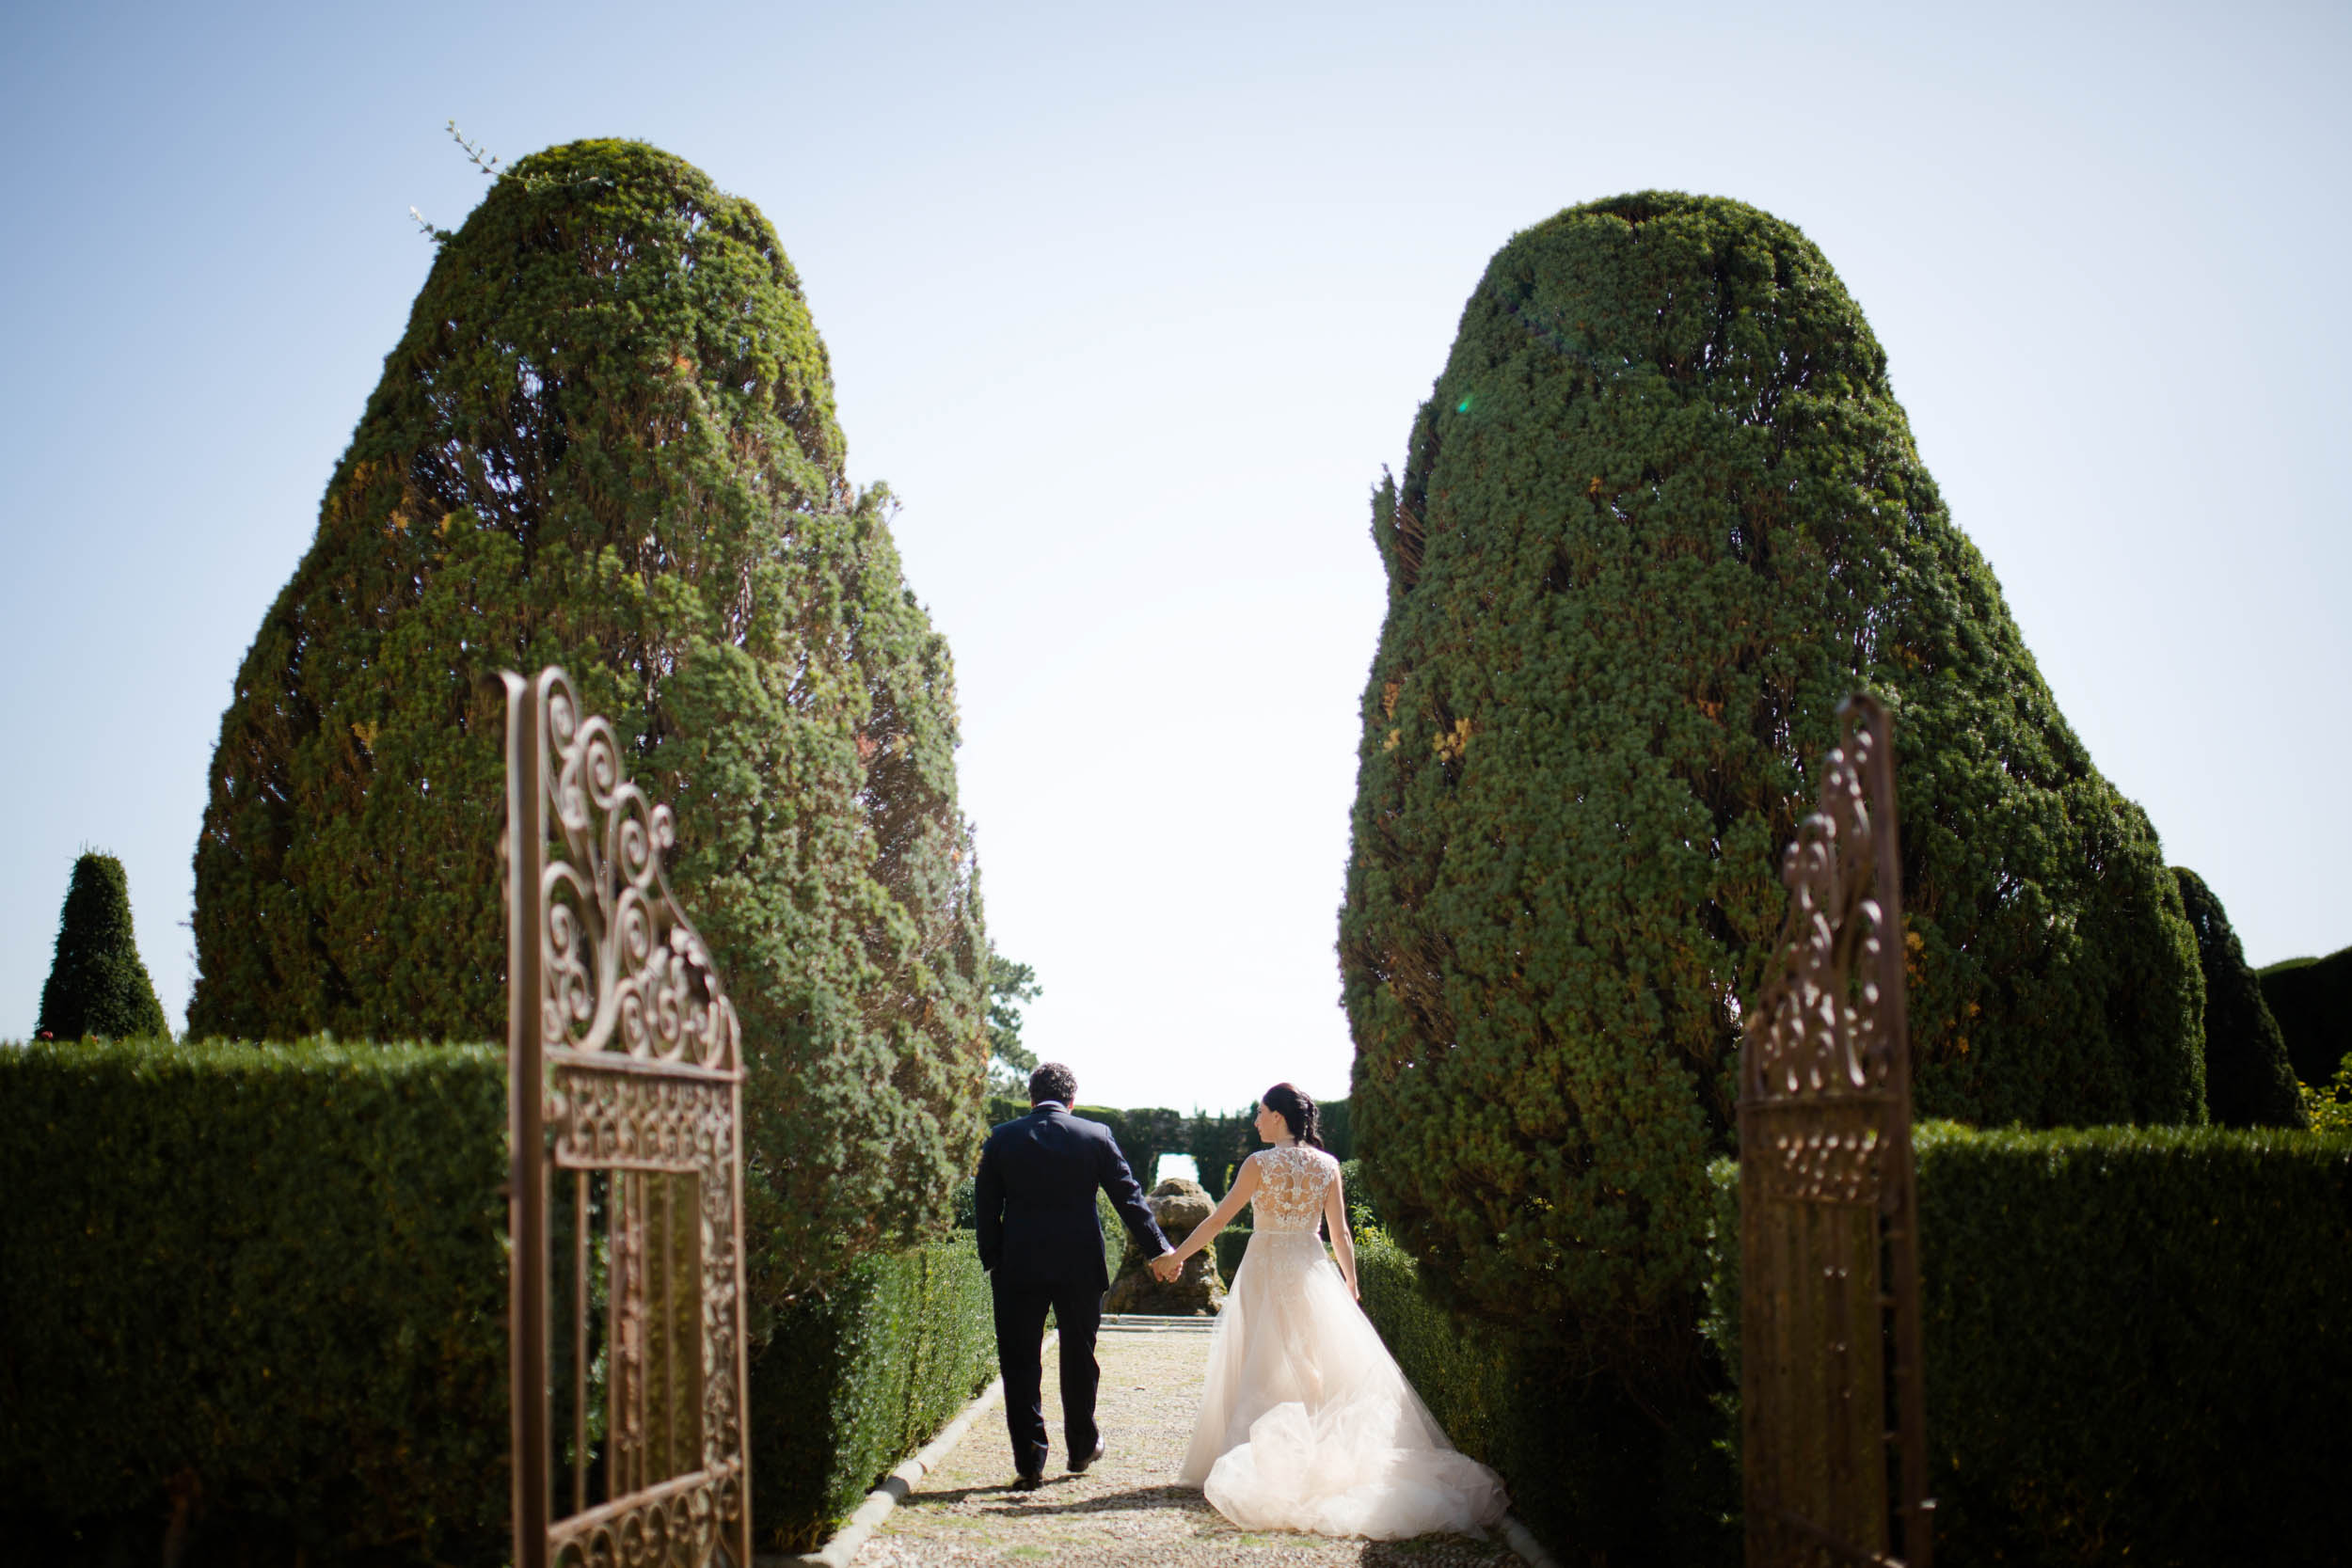 The gardens at this Florence villa provided a stunning backdrop for bridal portraits on the wedding day.